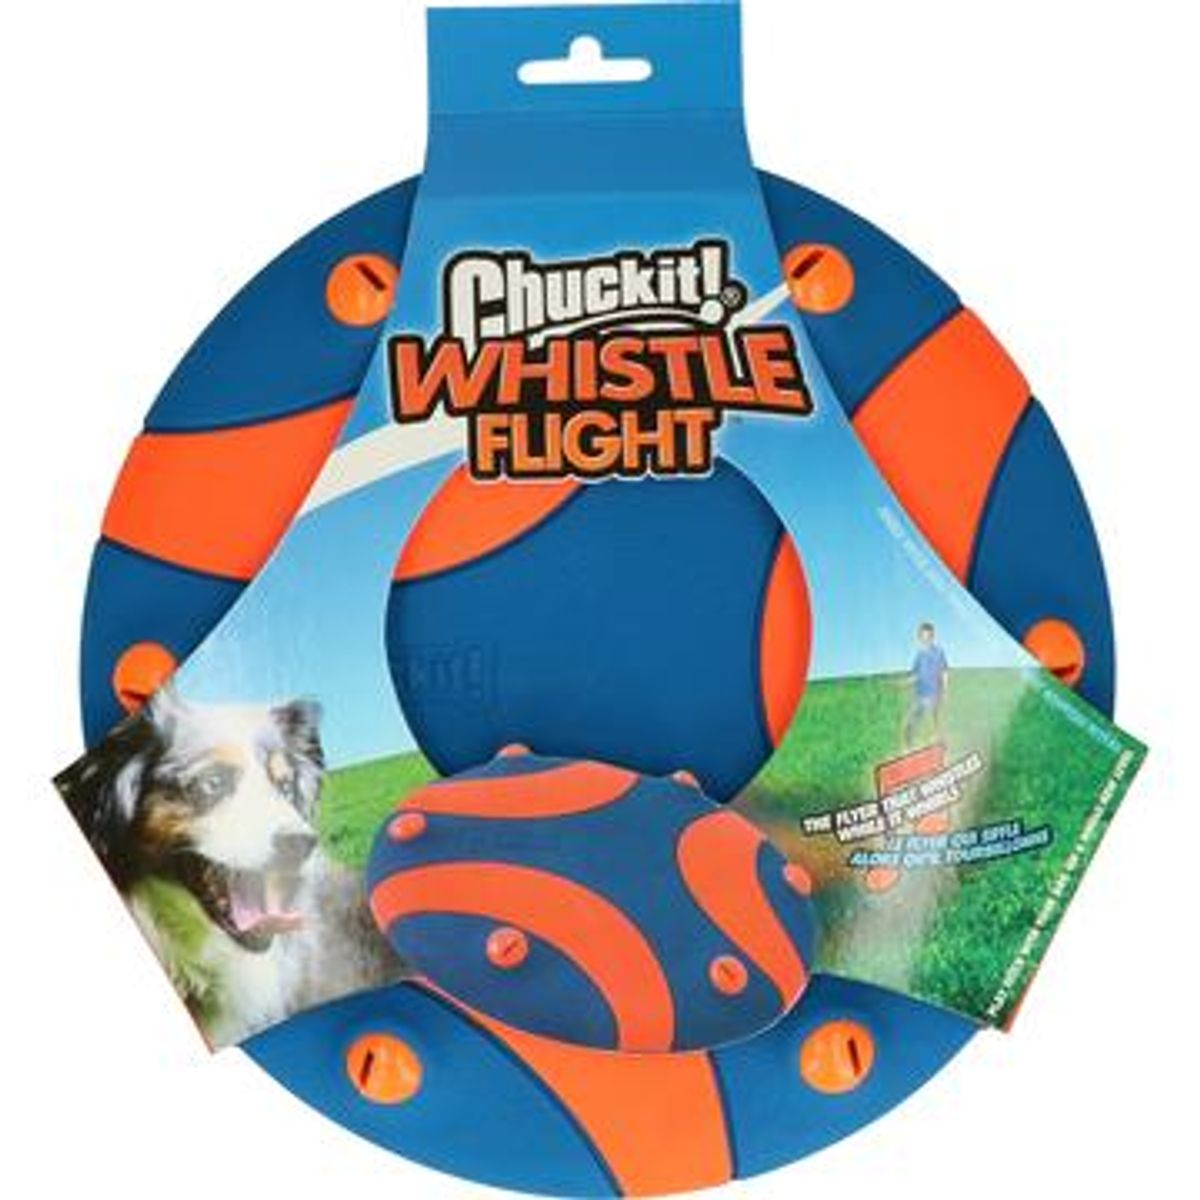 Hundeleke Frisbee Chuckit! Whistle Flight